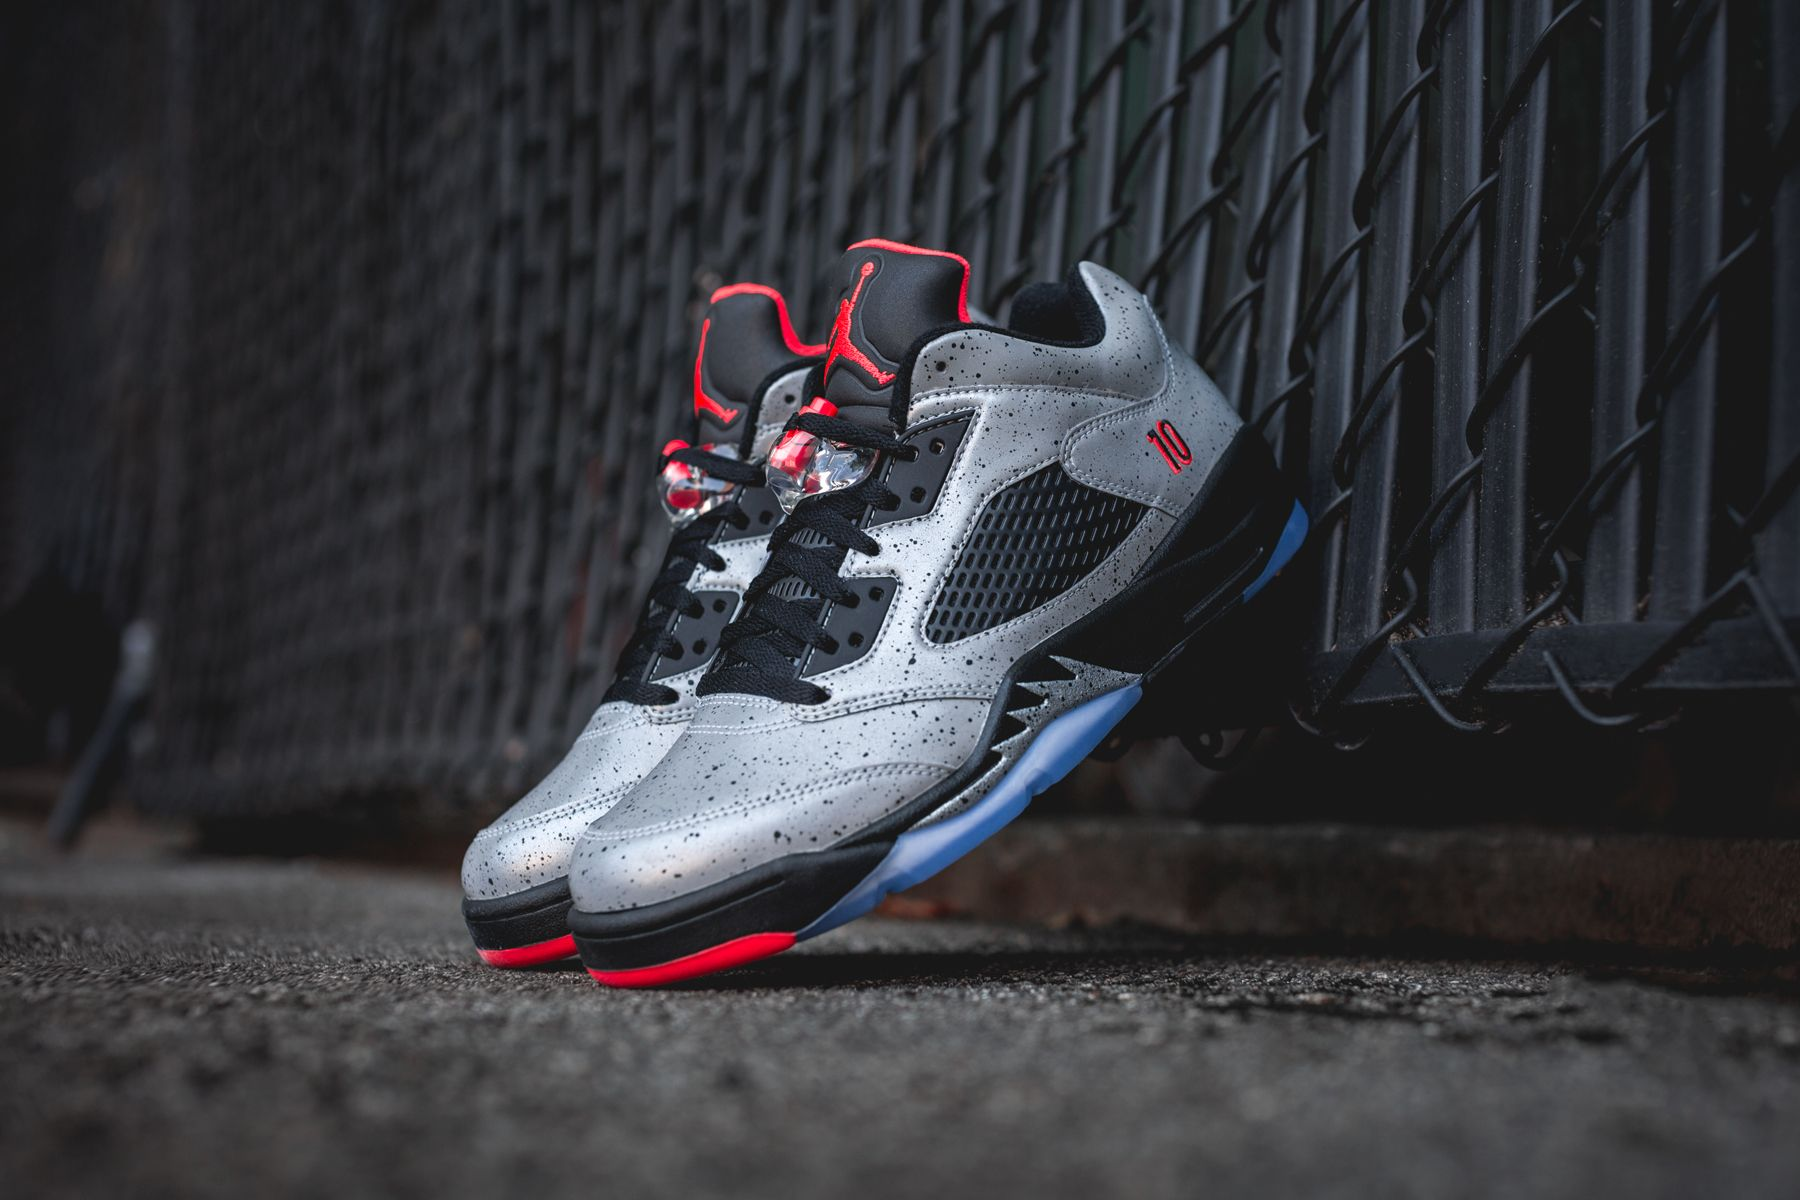 promo code cdd85 3d52e Soccer And Basketball Collide With The Air Jordan 5 Low Neymar. Find this  Pin and more on Air Jordans ...